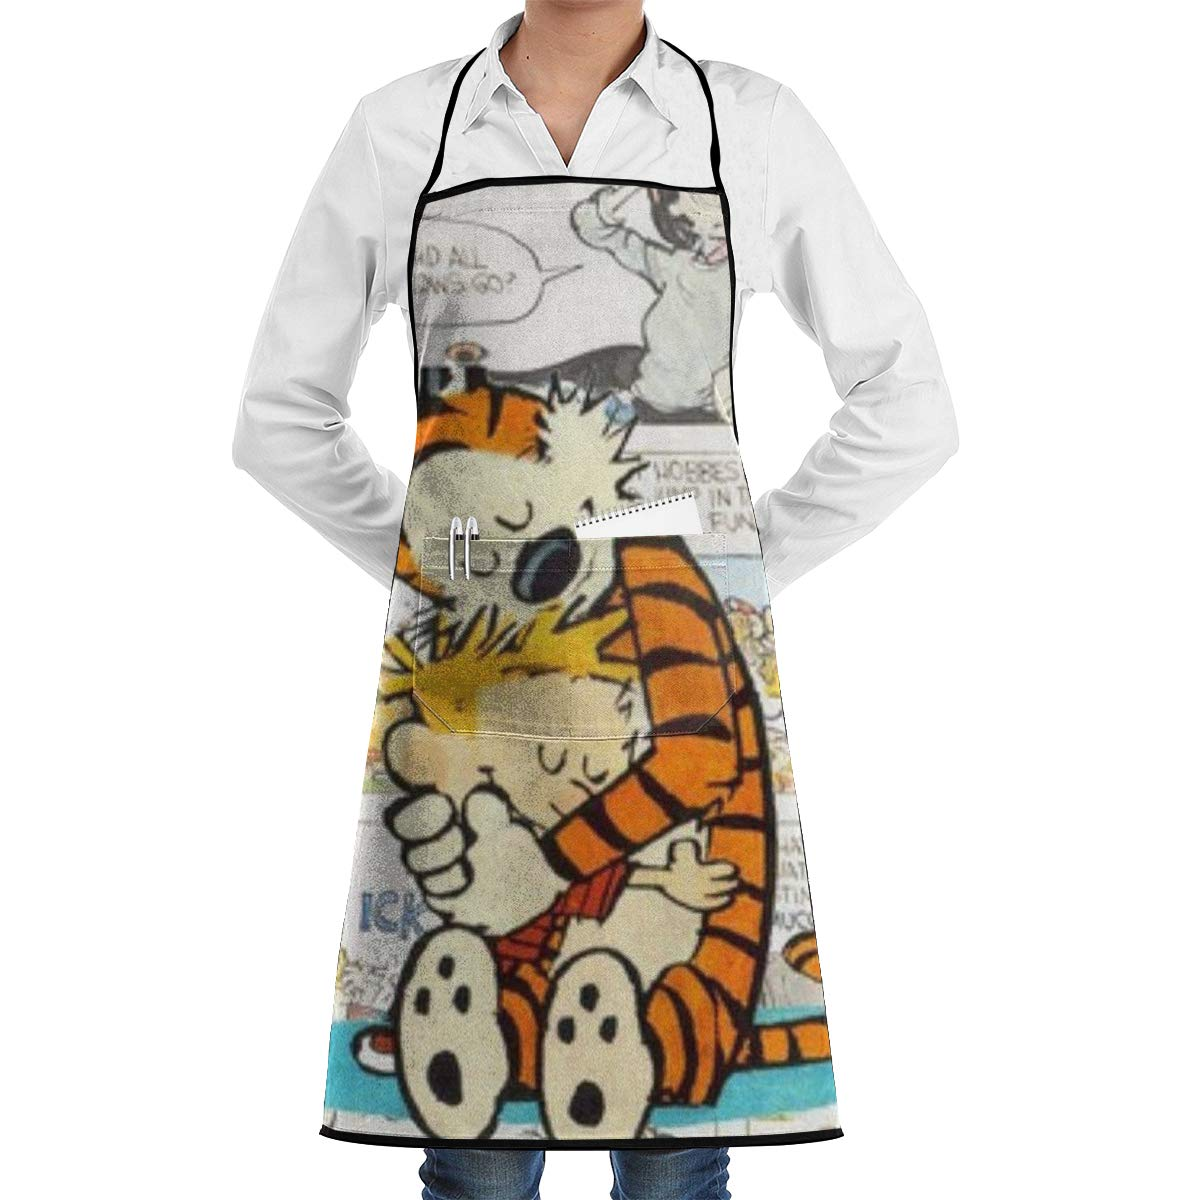 BHNMEHKM Hope Tree Fashion Custom Calvin and Hobbes Apron with Roomy Pocket Machine Washable Comfortable Adjustable Long Ties Chef Aprons for Kitchen Crafting BBQ Grilling Drawing